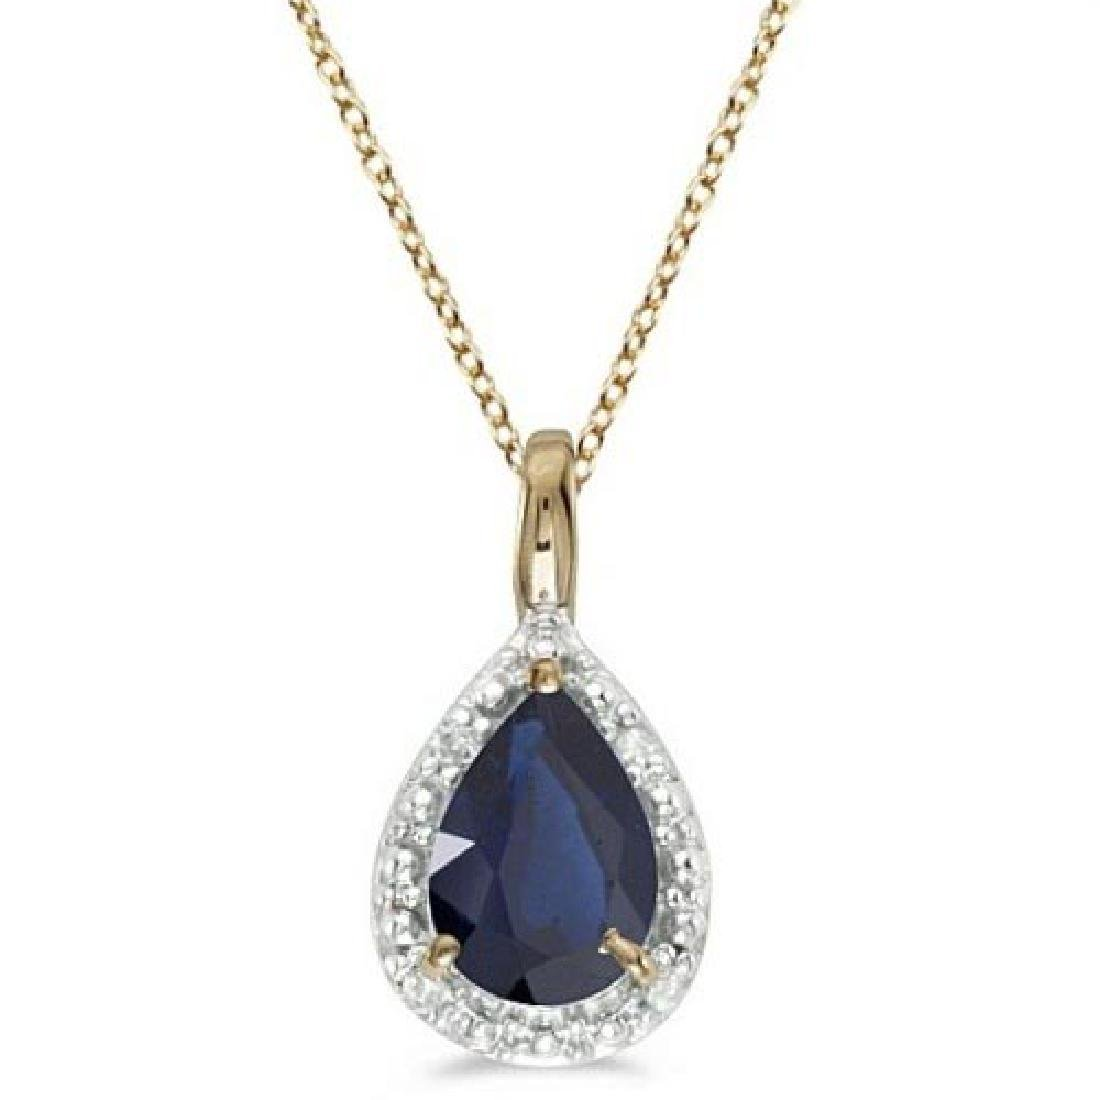 Pear Shaped Blue Sapphire Pendant Necklace 14k Yellow G